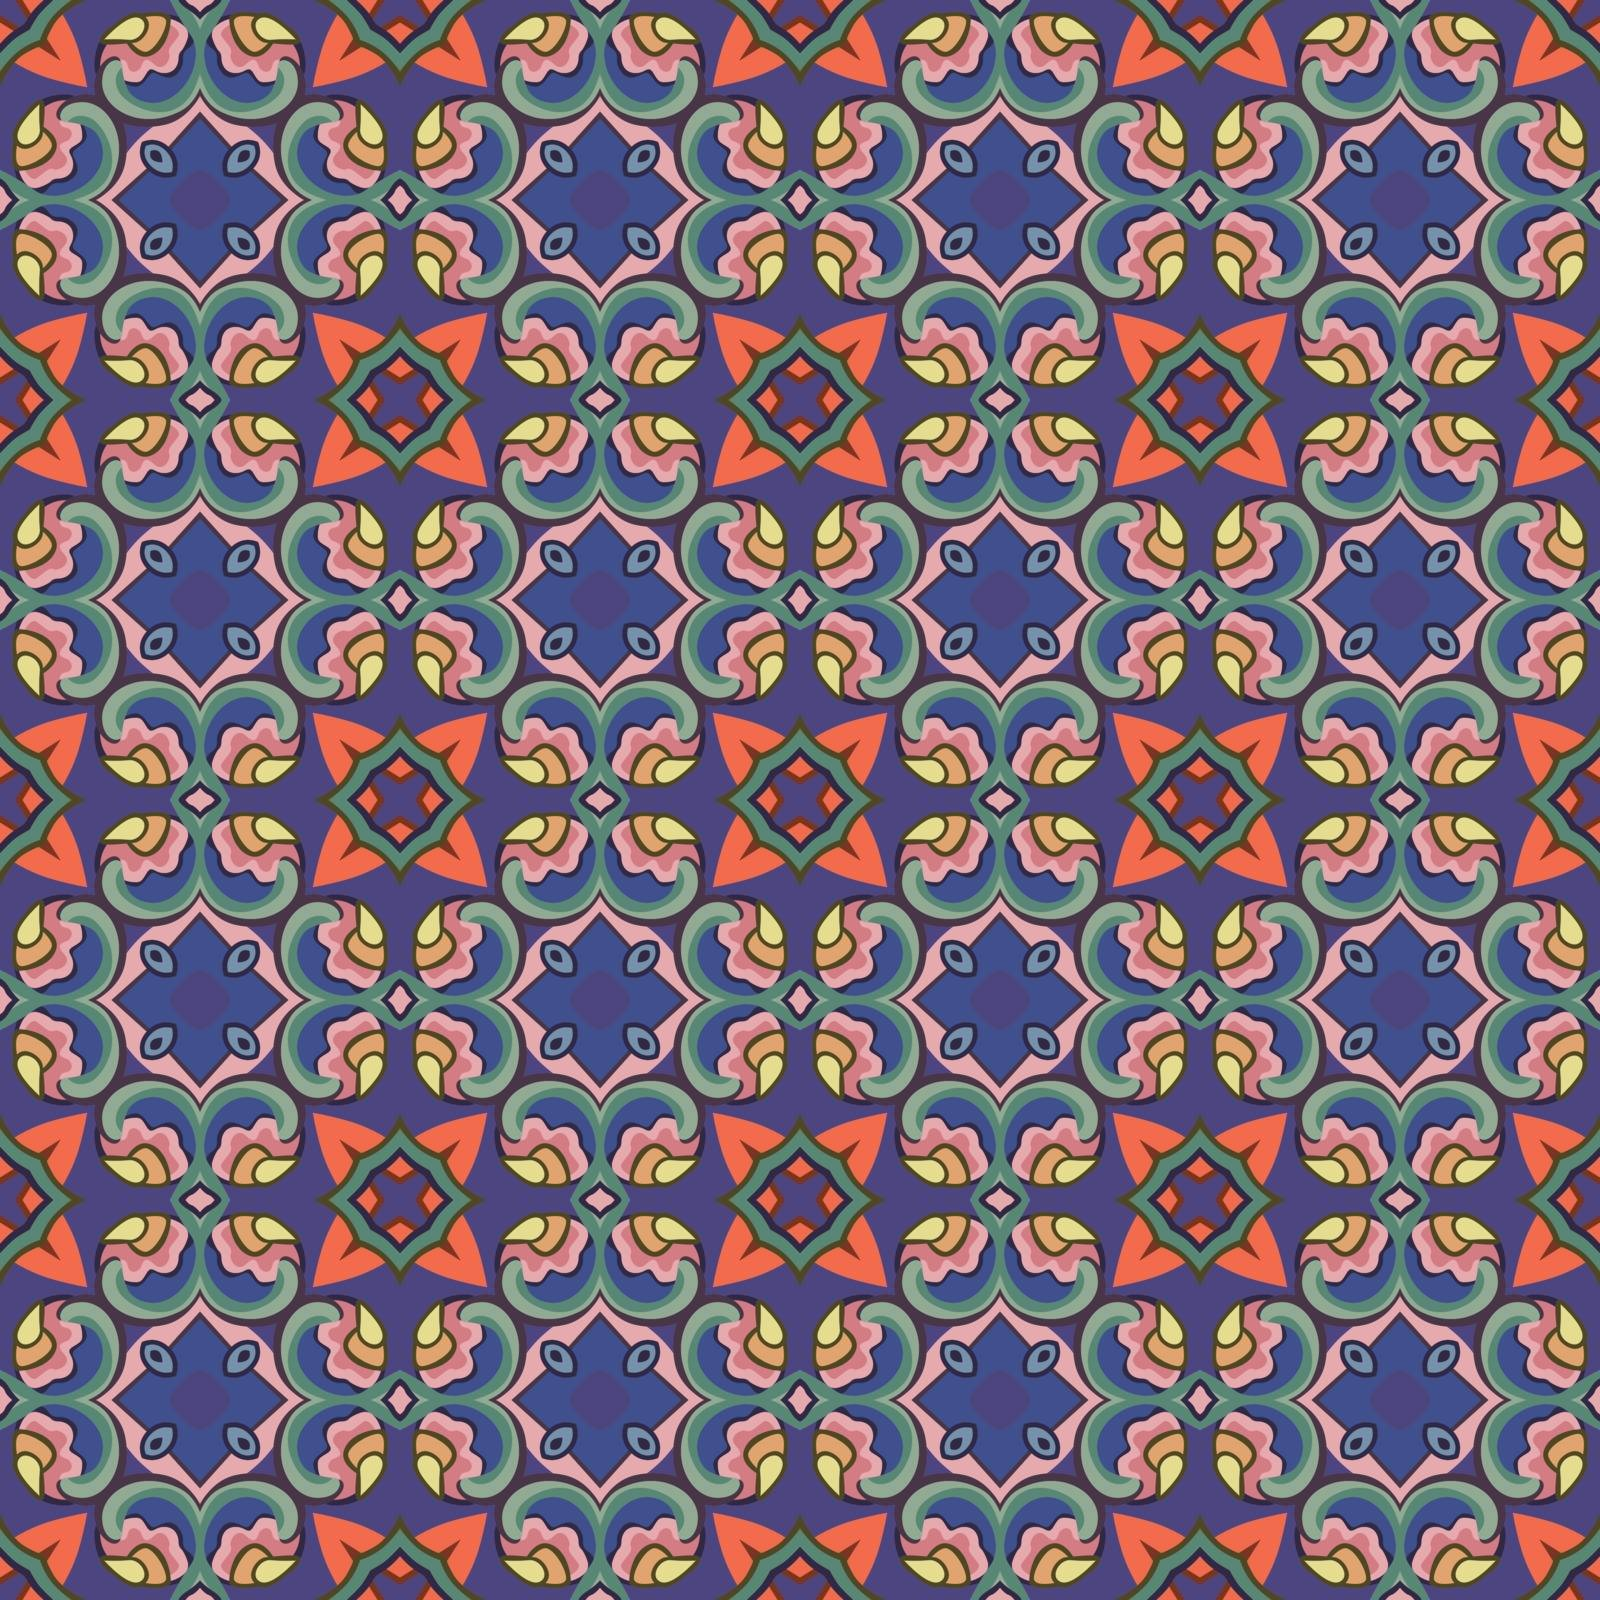 Seamless illustrated pattern made of abstract elements in blue, red, green, yellow, orange, pink, brown and gray